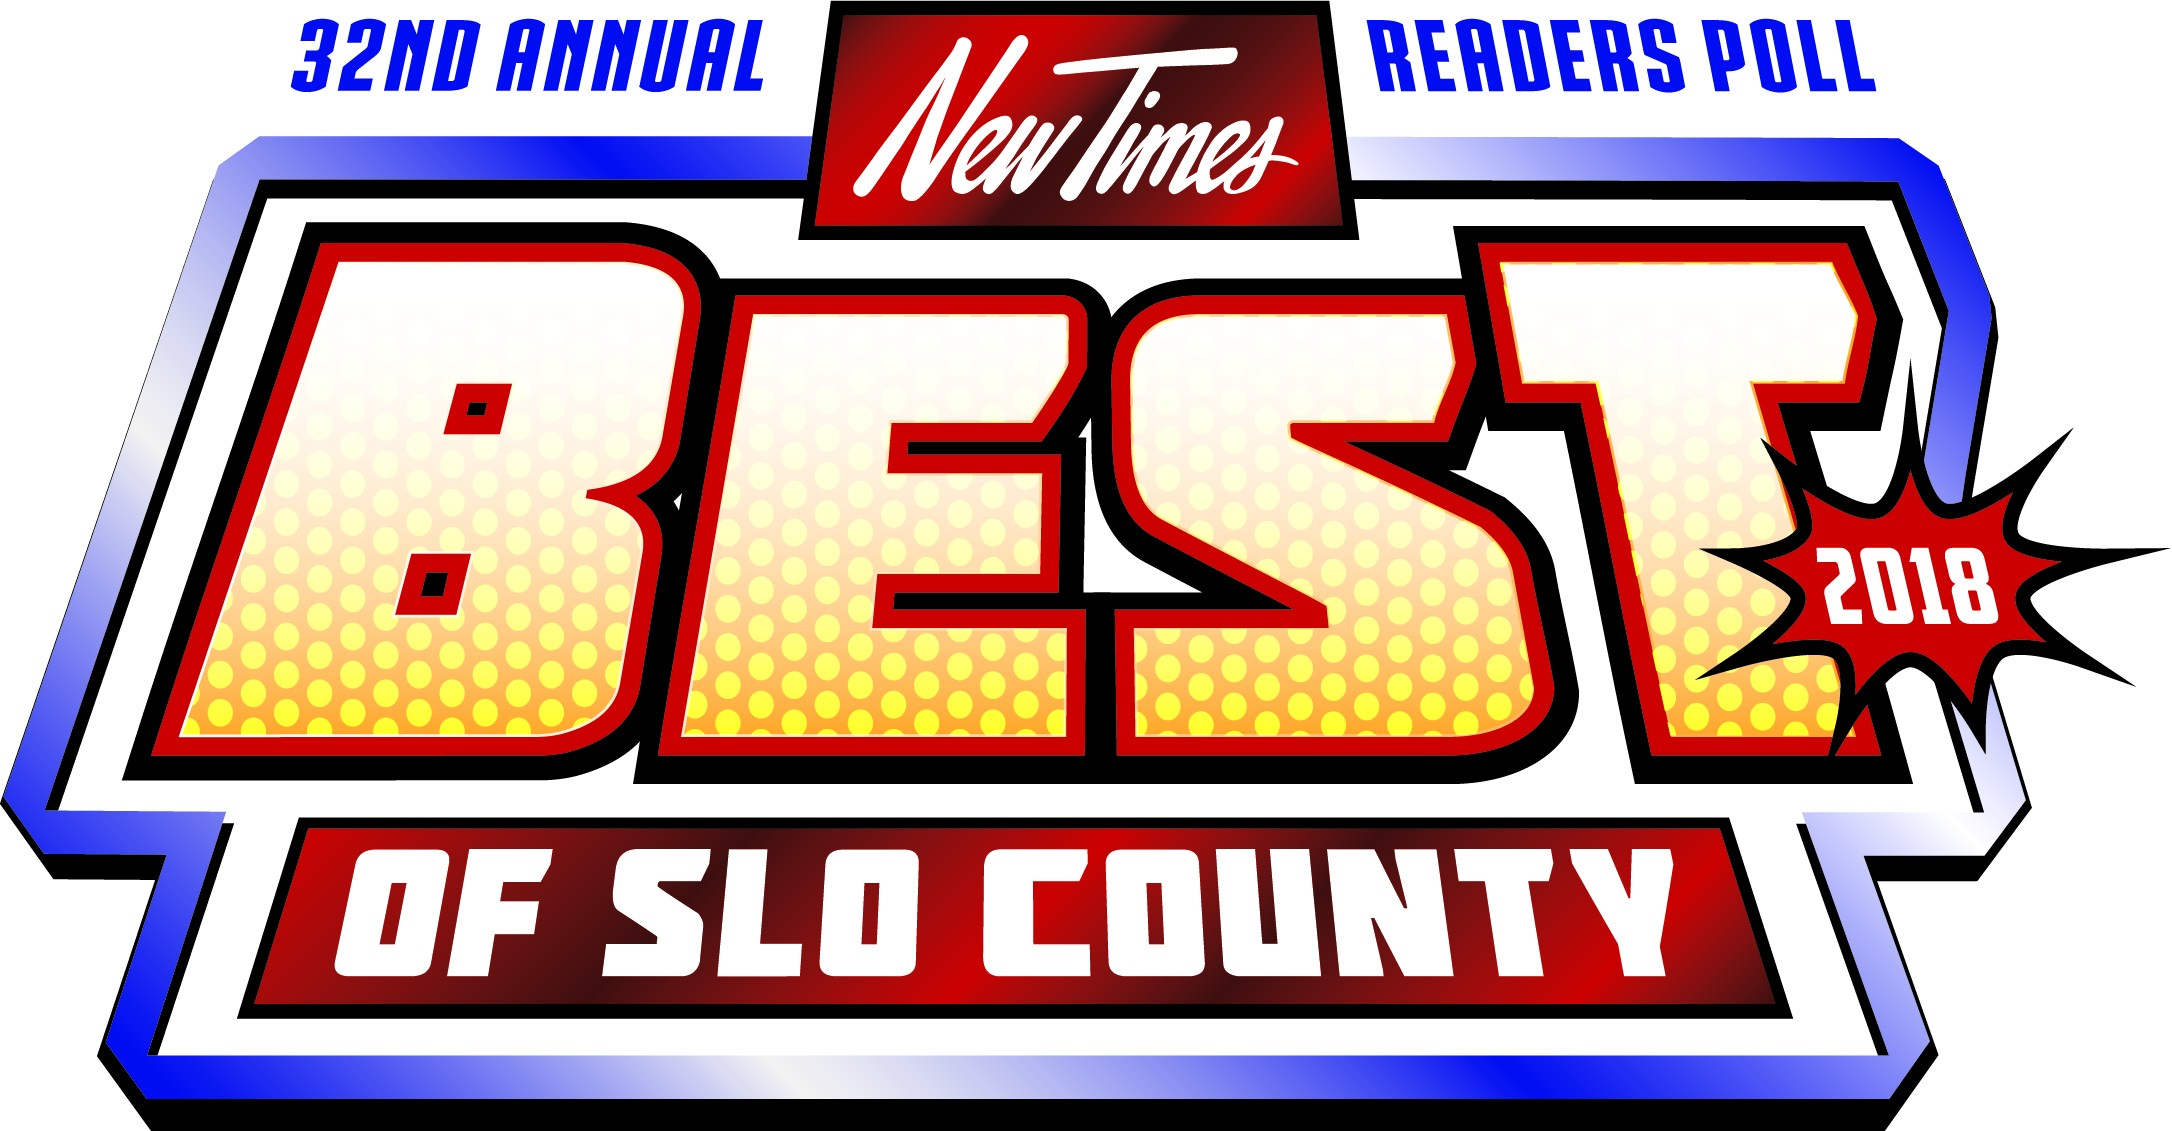 Best of SLO 2018 - Promotional Materials | New Times San Luis Obispo